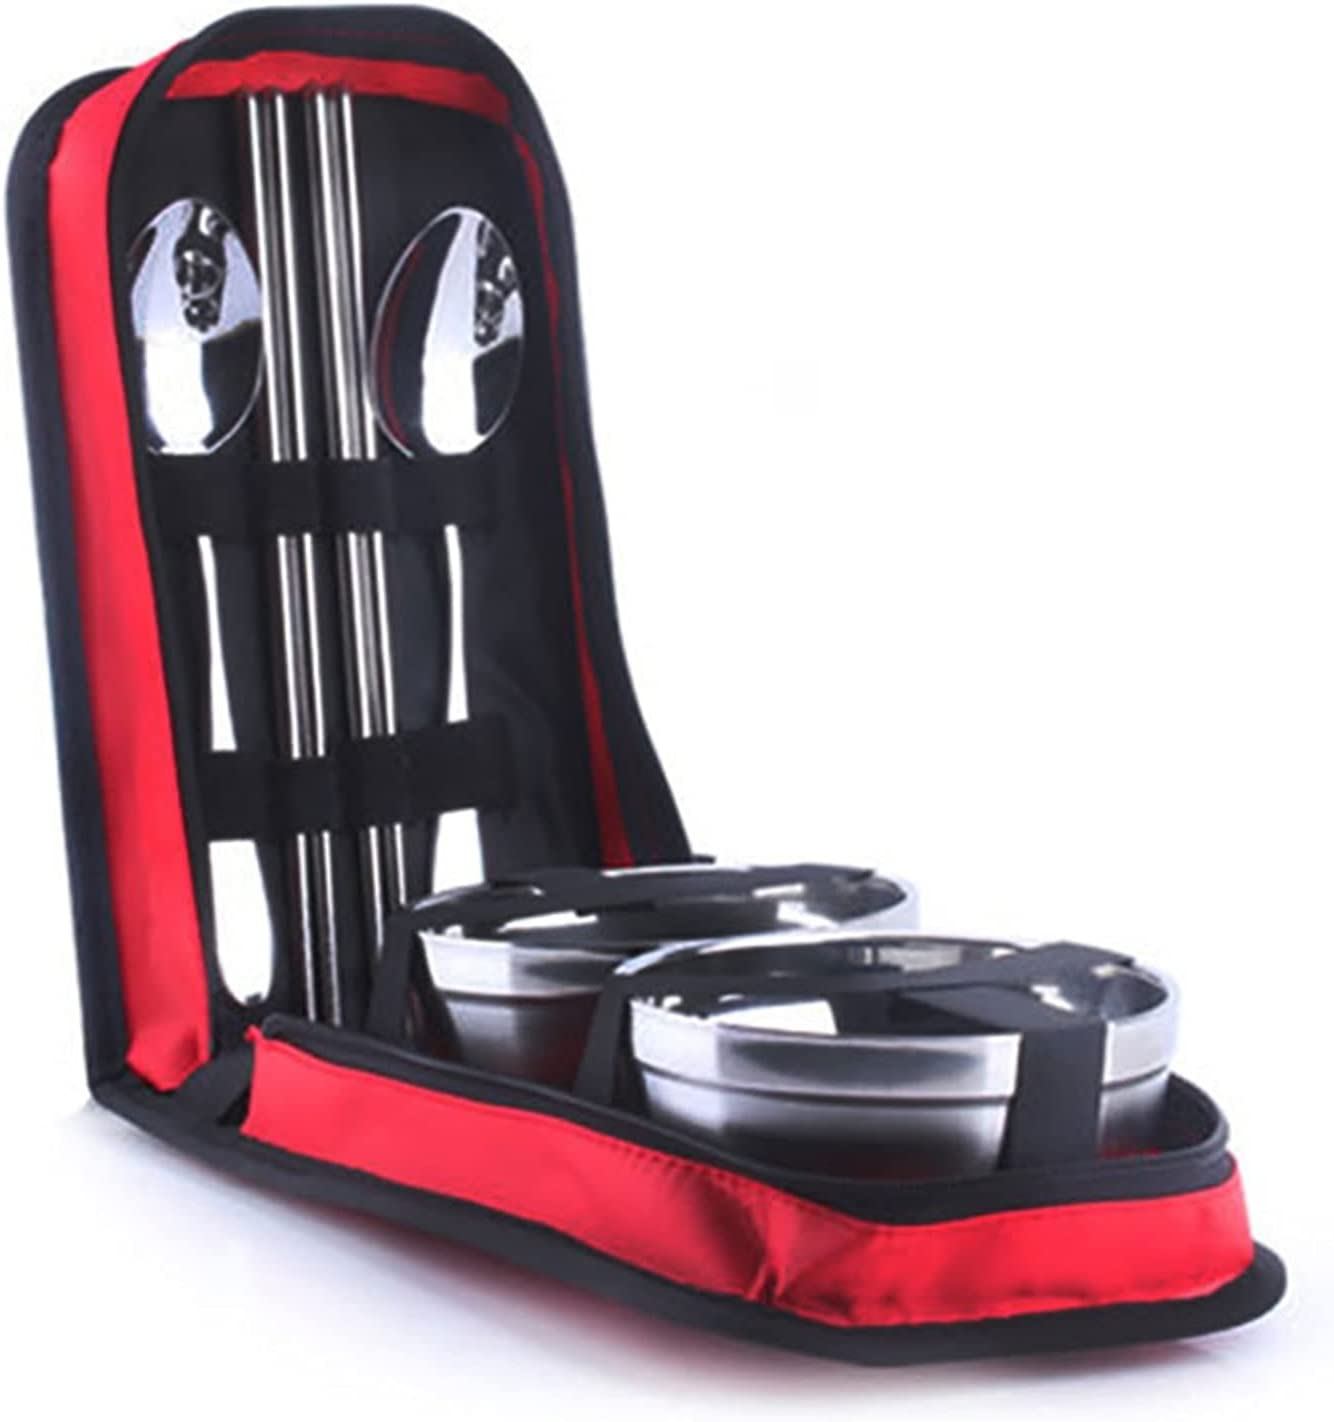 UIOP Picnic Tourist Atlanta Mall It is very popular Set Outdoor Tableware Steel Stainless Campin